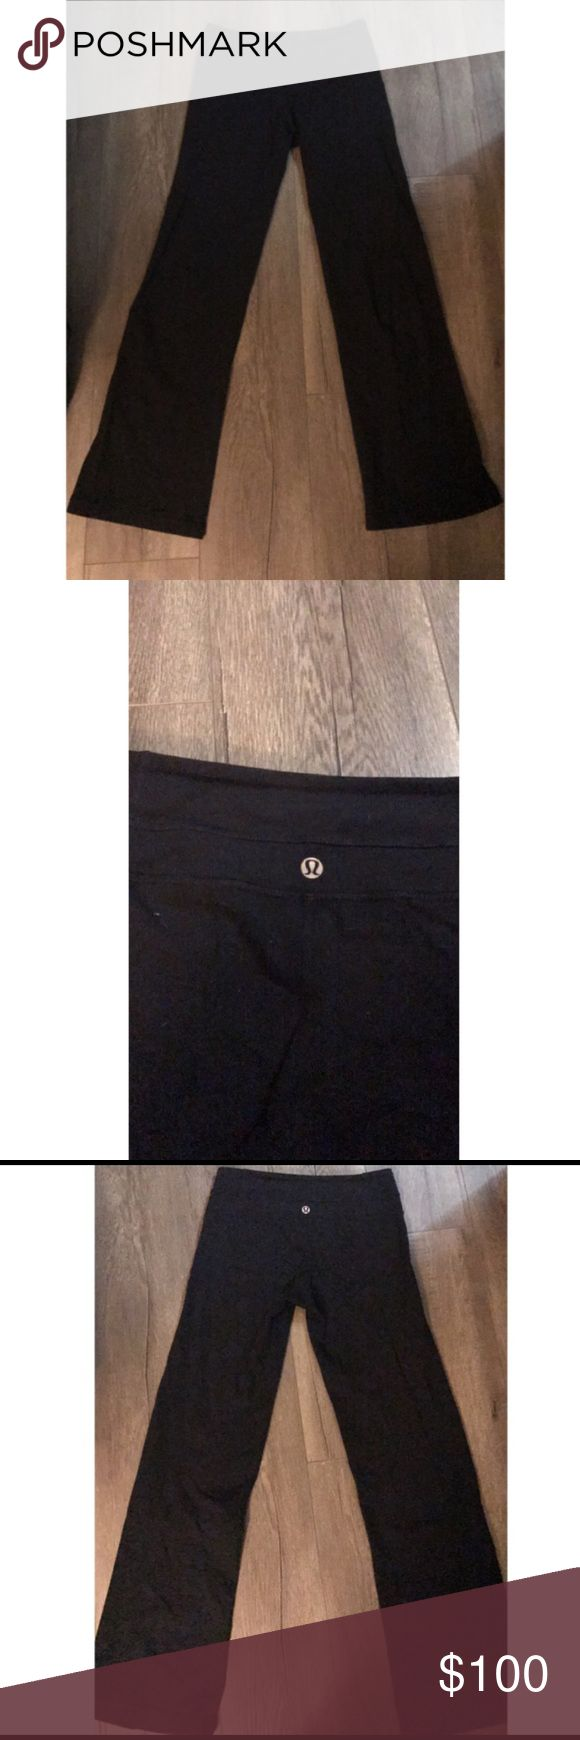 Boot cut lululemon leggings FLASH SALE Black bootcut lululemon leggings size 2. These are so comfortable and cute. Only willing to trade for another pair of black bootcut lulus. I can't find any bootcut black lulus online so that's the only reason I'm listing these lululemon athletica Pants Leggings